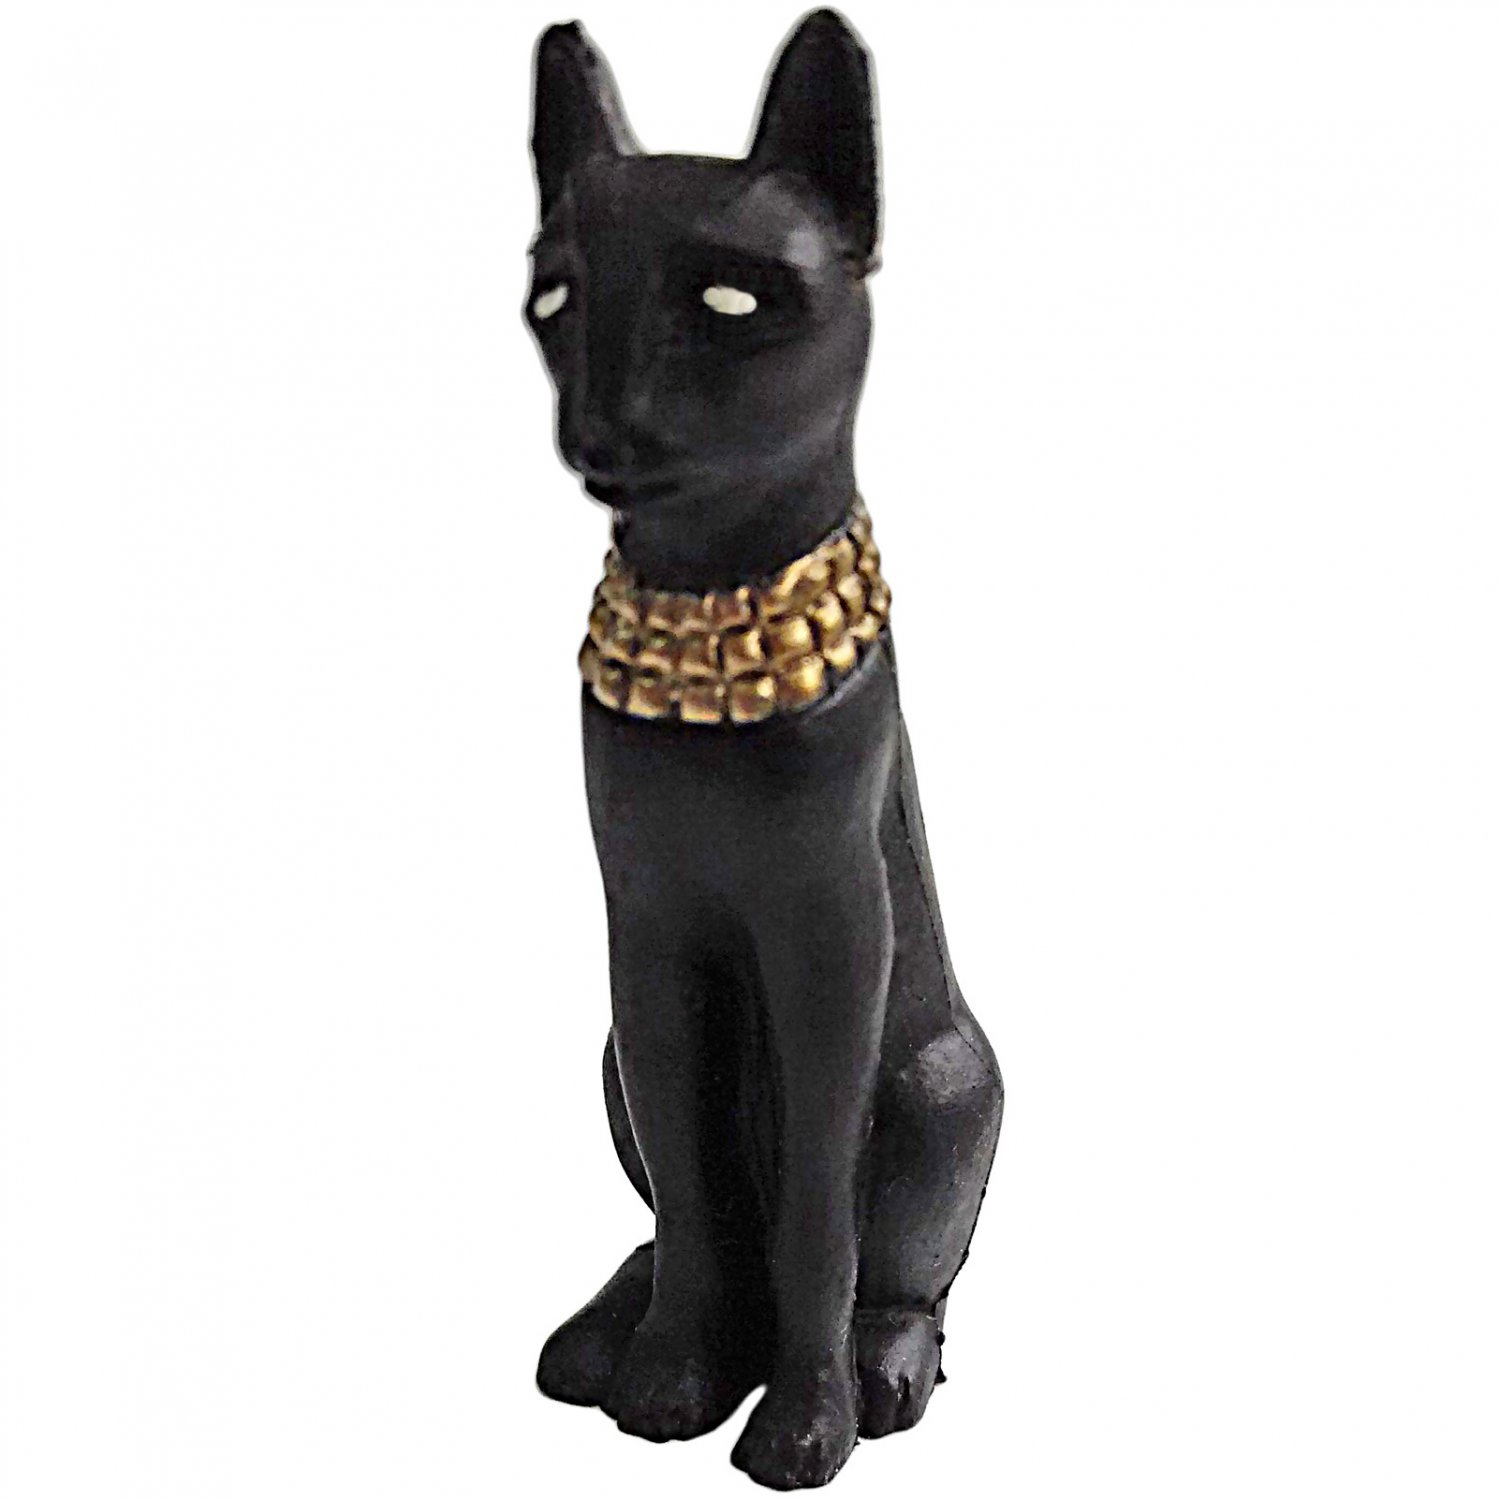 Egyptian Egypt Bastet Baast Ubaste Cat Animal Educational Figure 4.7cm Height #13305